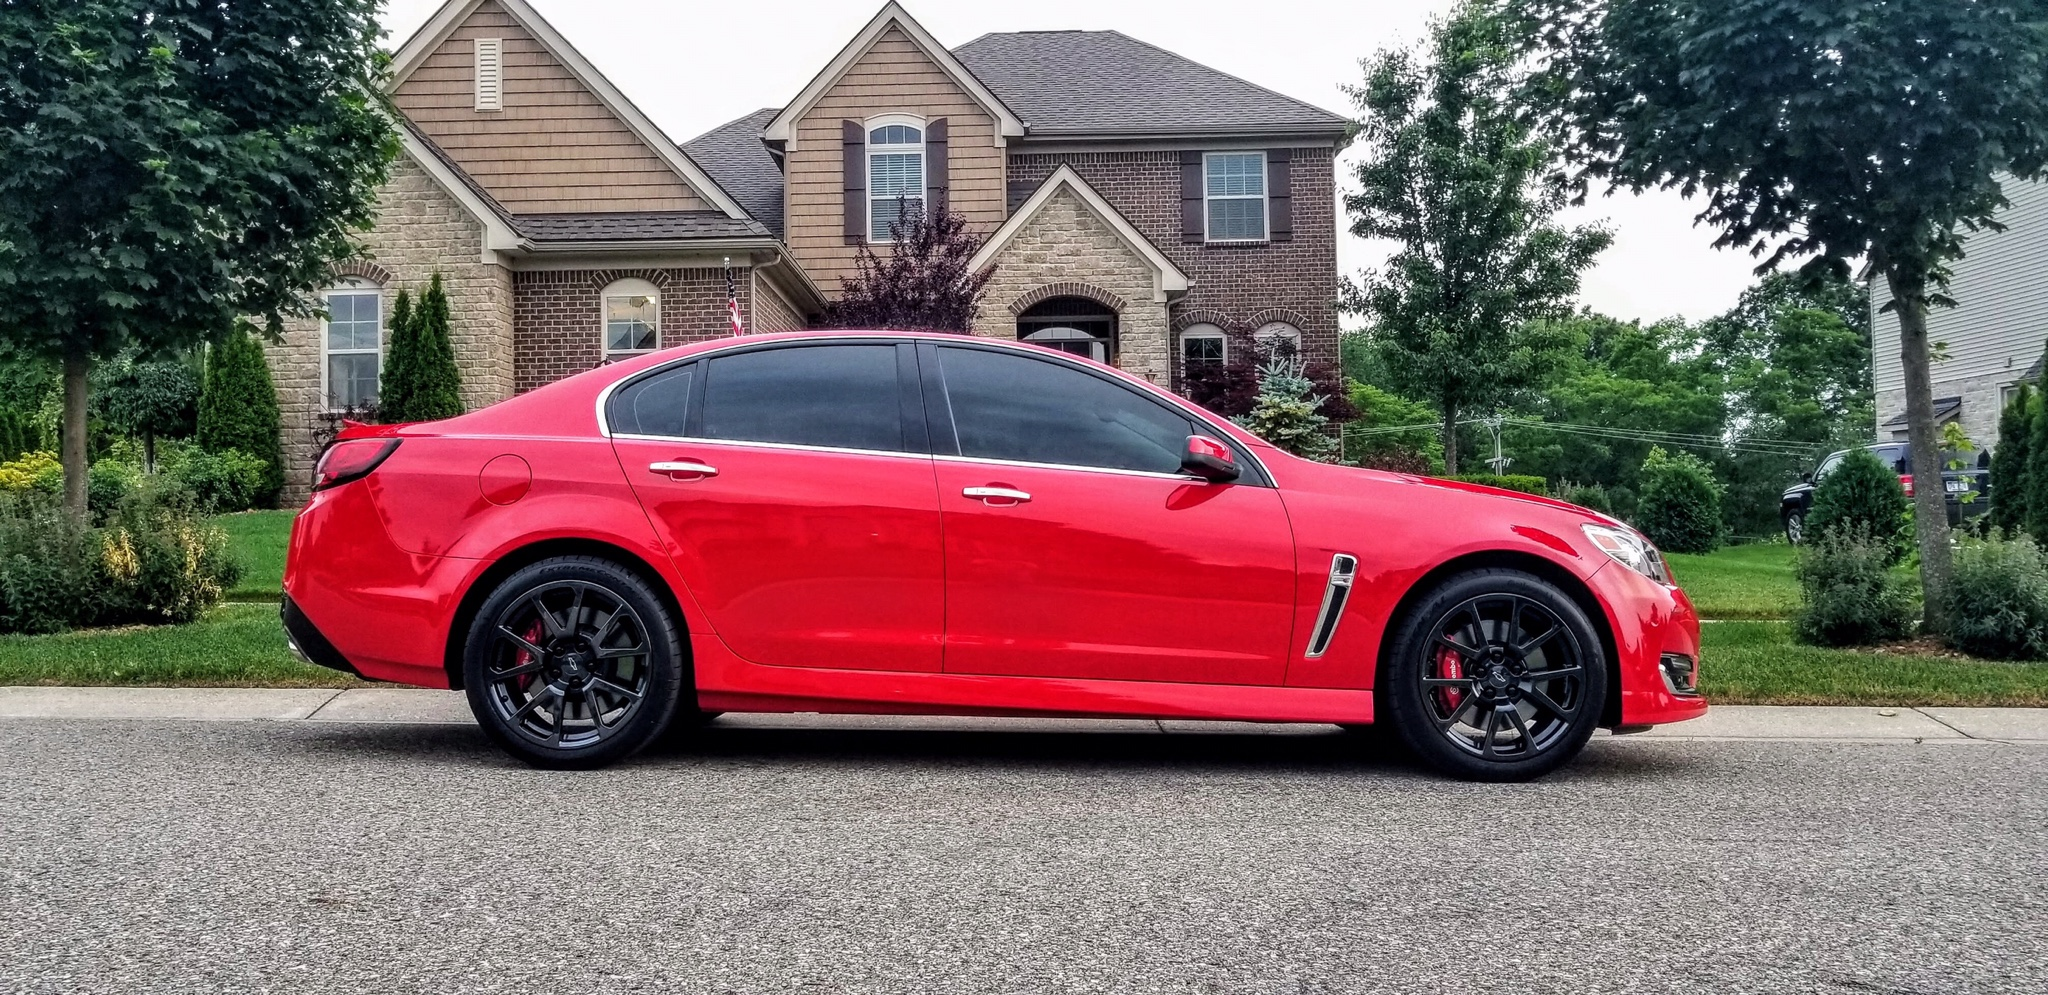 Red Hot 2 Chevrolet SS Picture Thread - Page 17 - Chevy SS ...